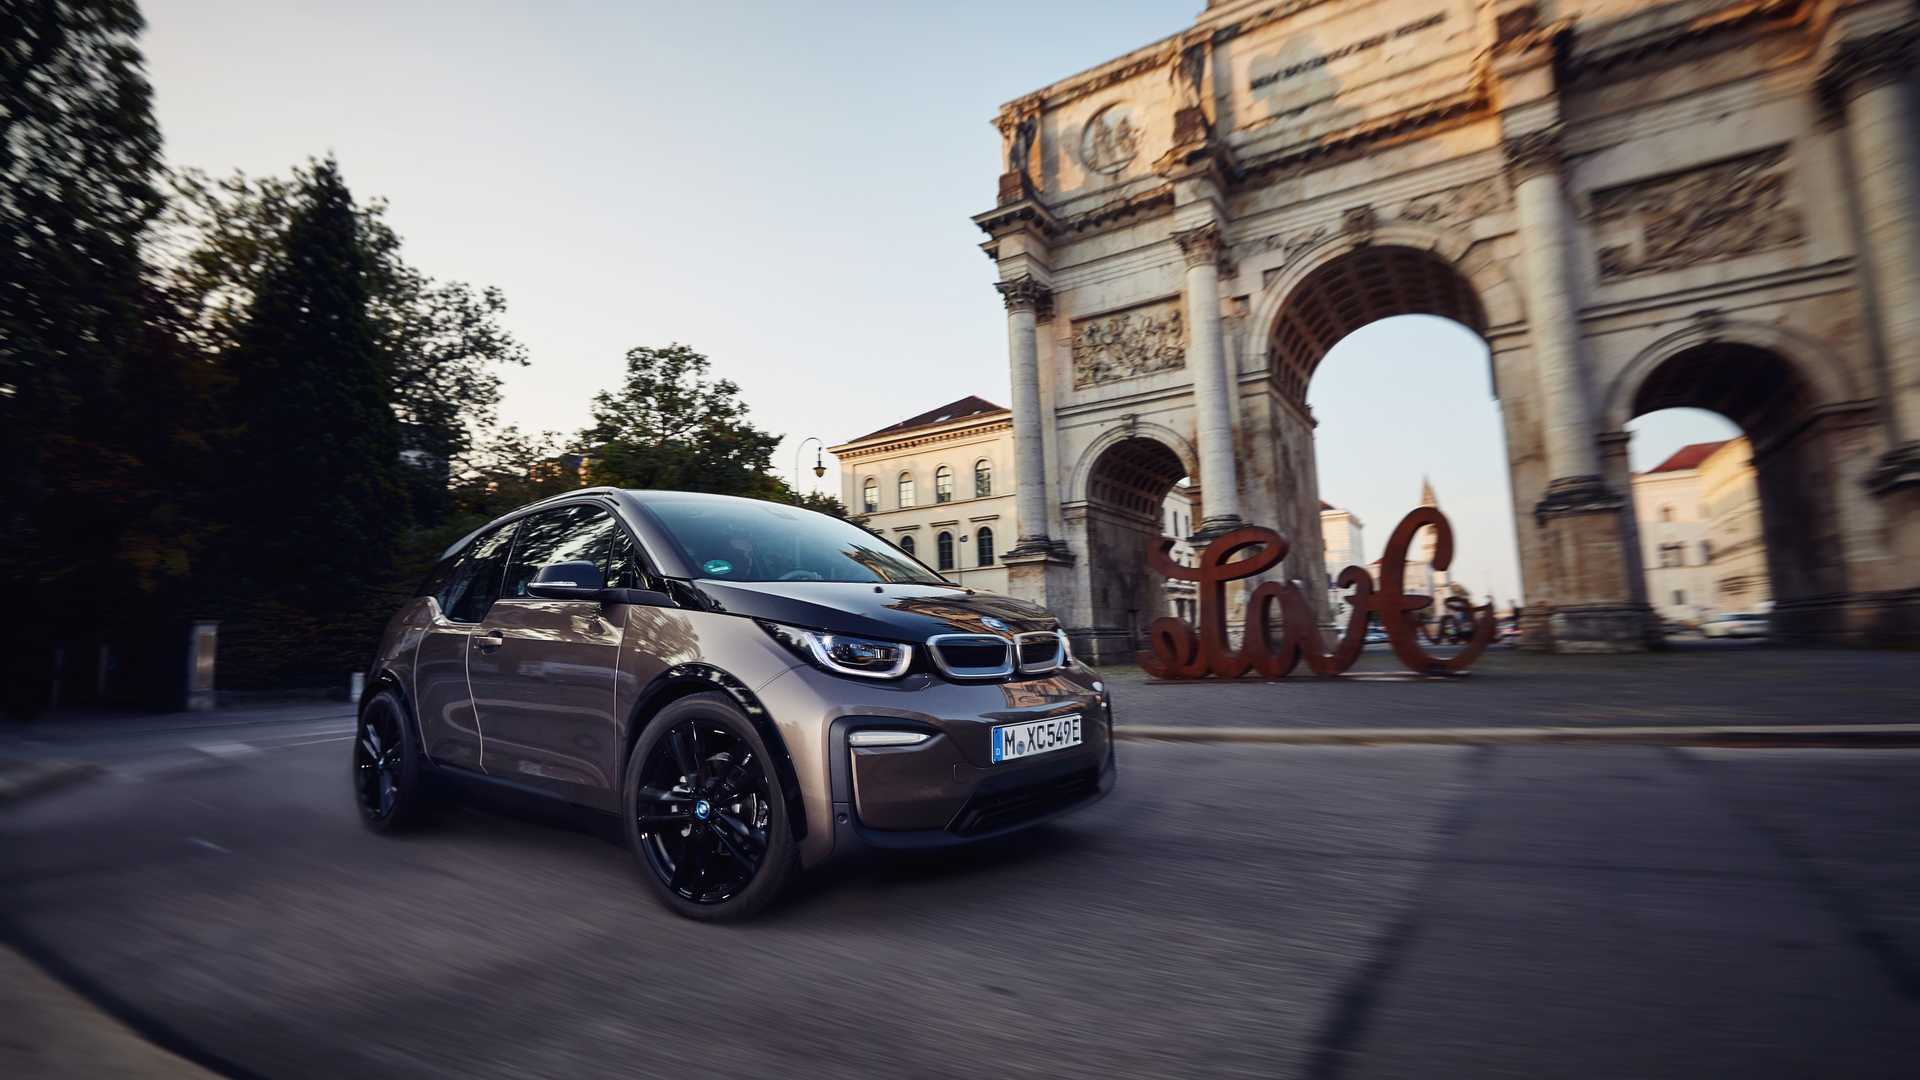 Longer Range BMW i3 Sells Well In Germany: No Need For REx